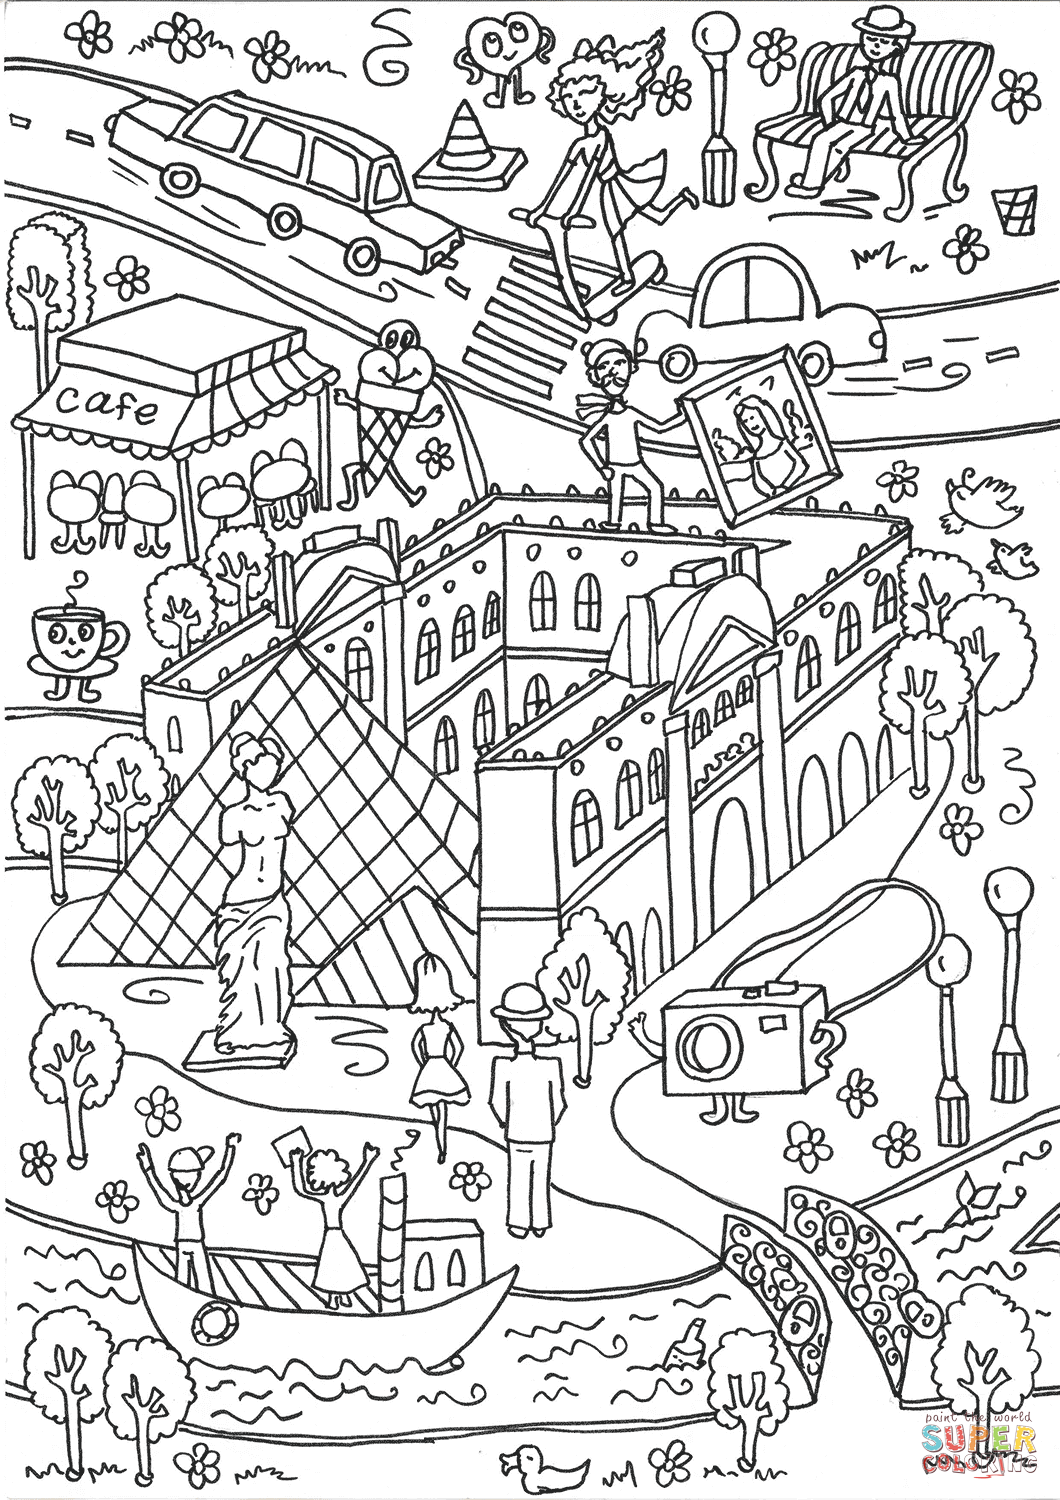 The Louvre Museum And The Seine River Coloring Page Free Printable Coloring Pages Coloring Pages Louvre Museum Free Printable Coloring